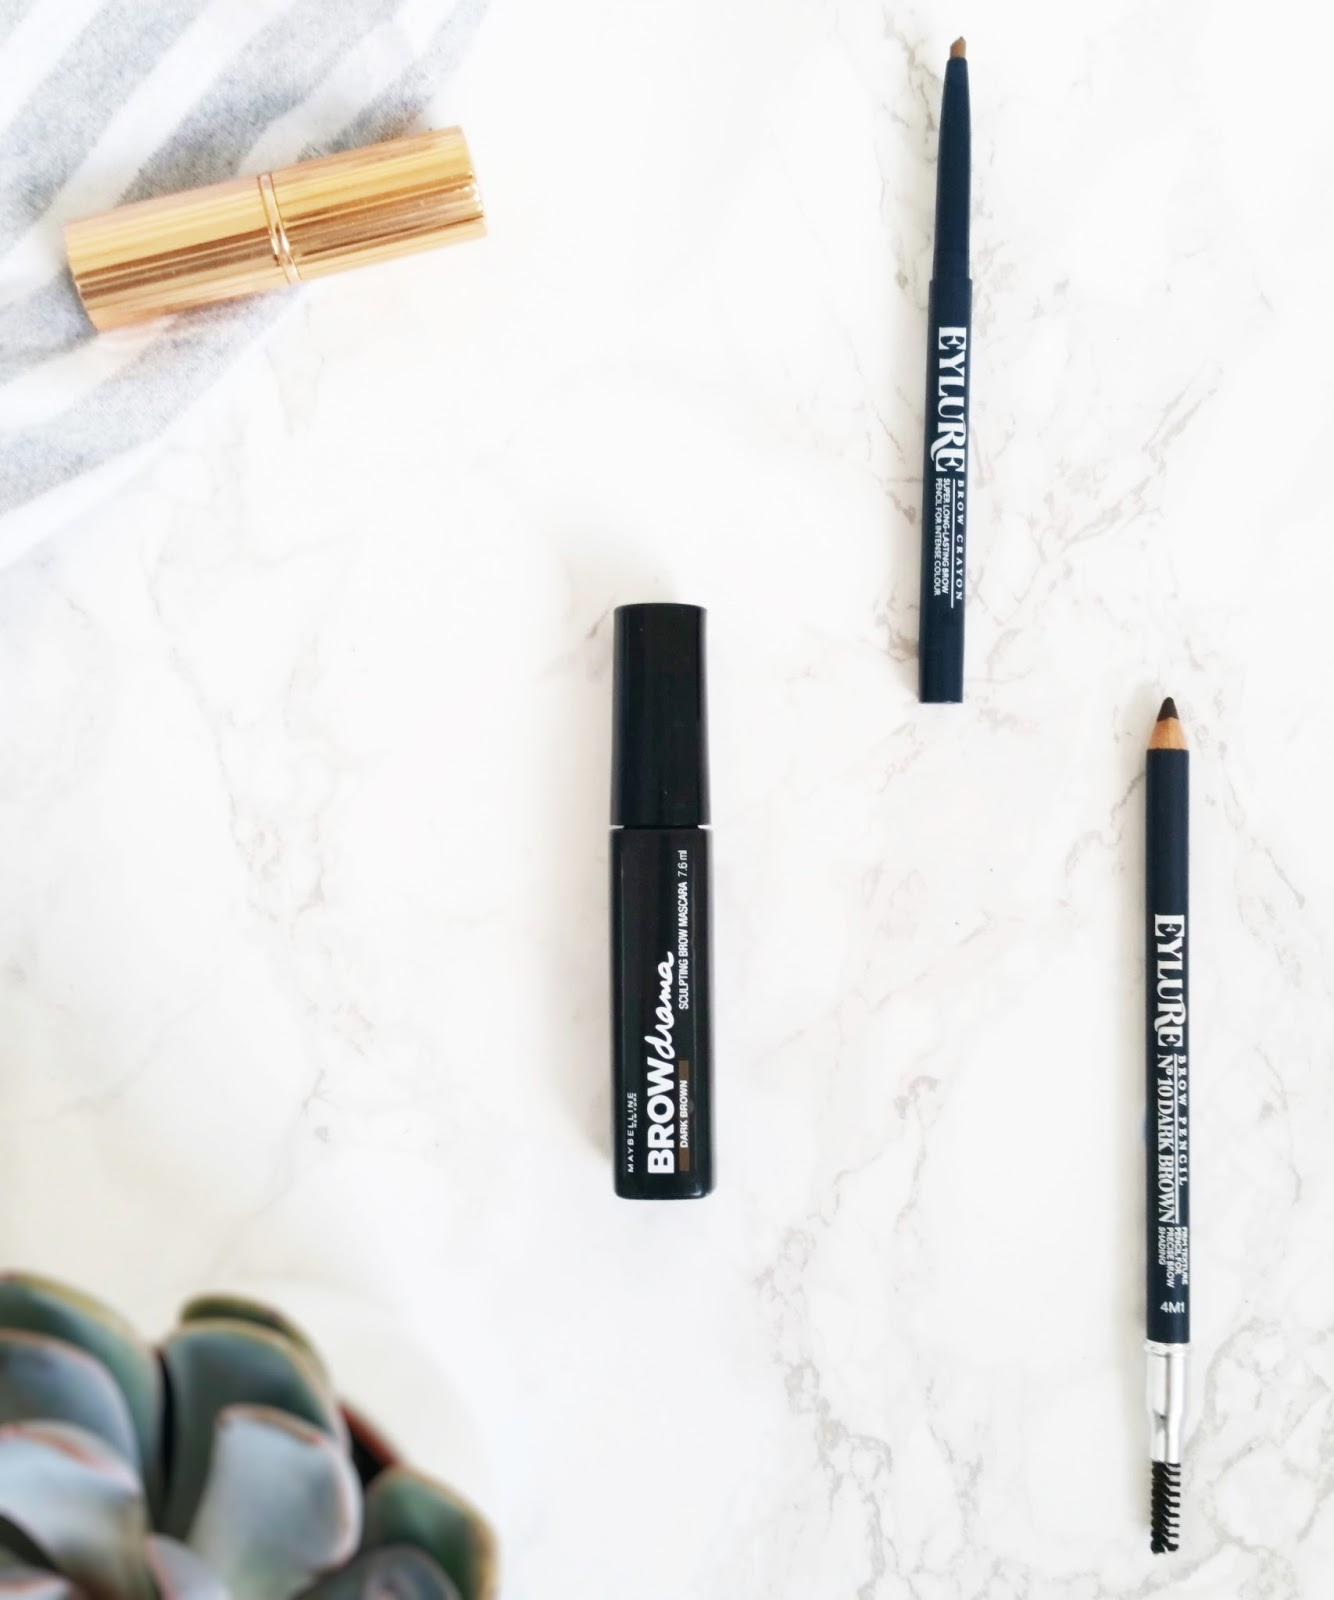 budget brow products, eylure brow crayon, eylure brow pencil, maybelline brow drama